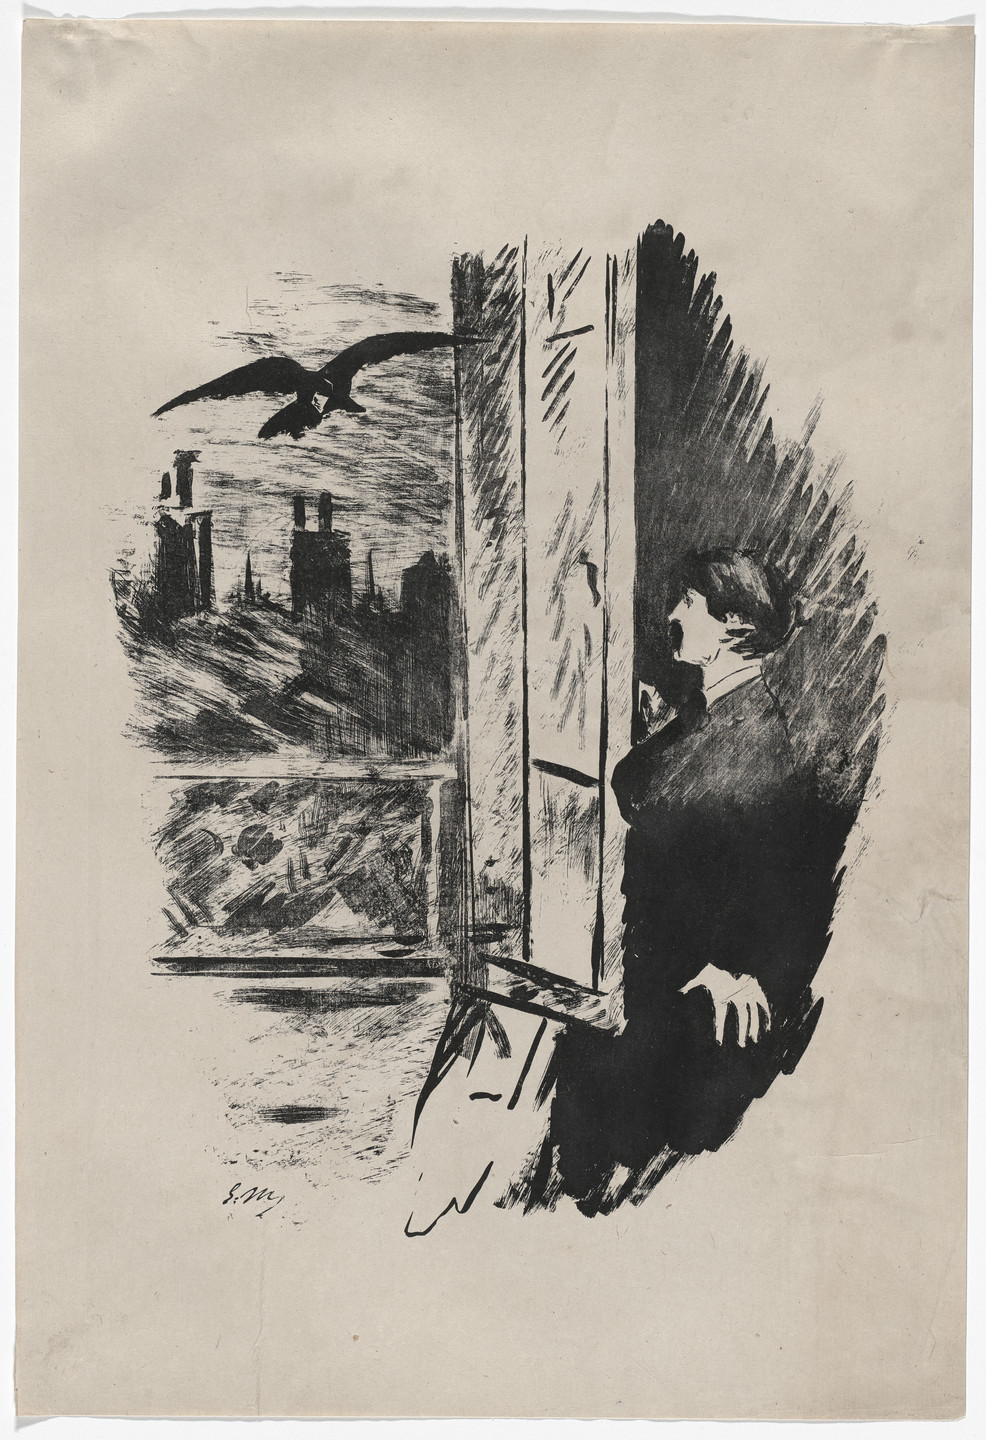 Édouard Manet. A la fenêtre (At the Window) (plate 2) from Le Corbeau (The Raven). 1875